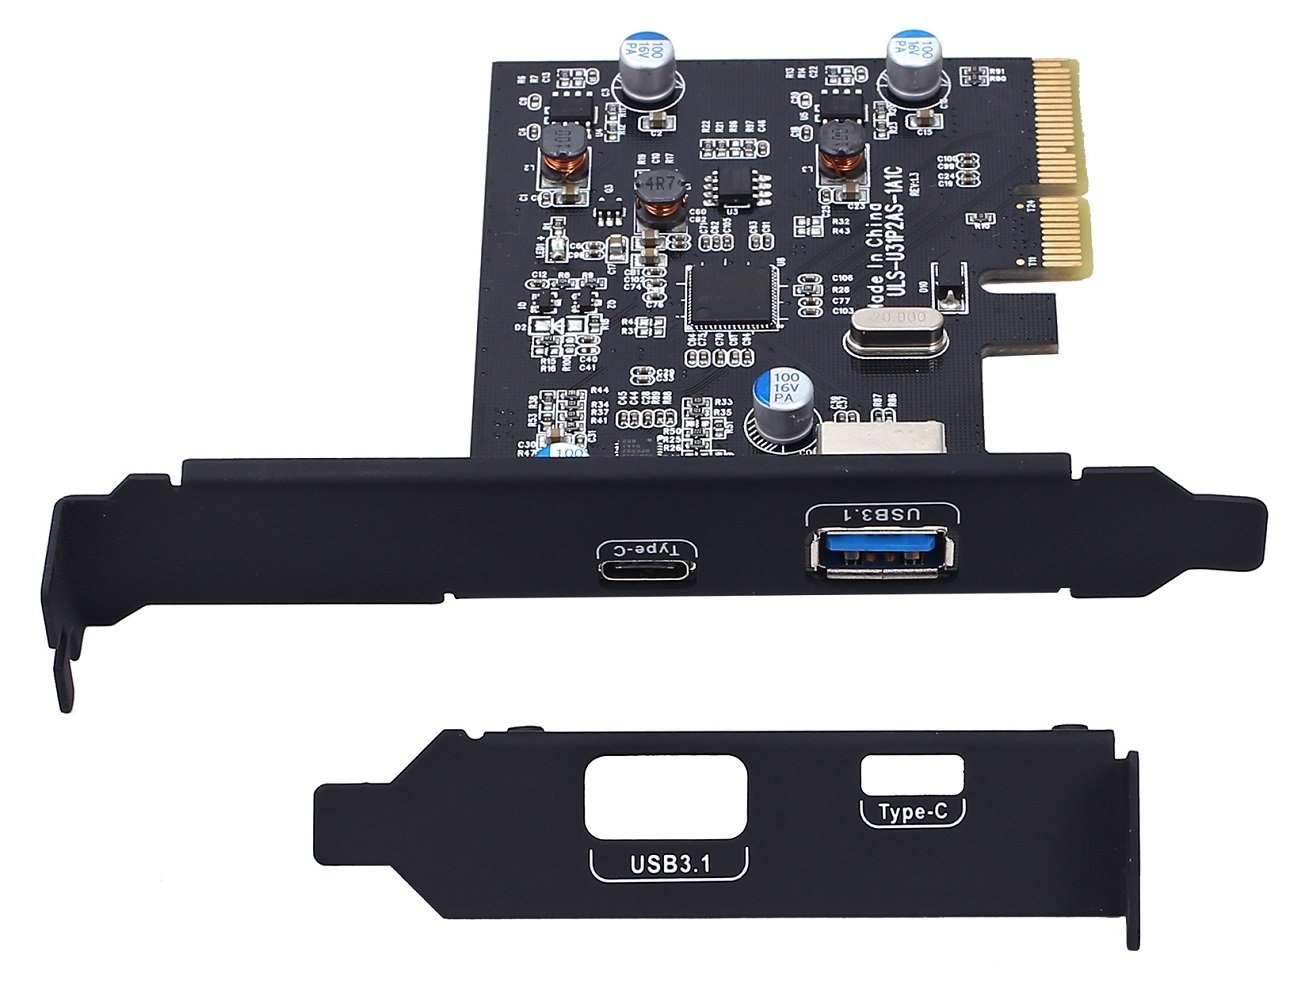 TOTOVIN PCI-E PCI Express to USB 3.1 Gen 2 (10 Gbps) Type A+Type C Expansion Card Asmedia Chipset for Windows 7/8/8.1/10/Linux Kernel (Type A+Type C) by TOTOVIN (Image #5)